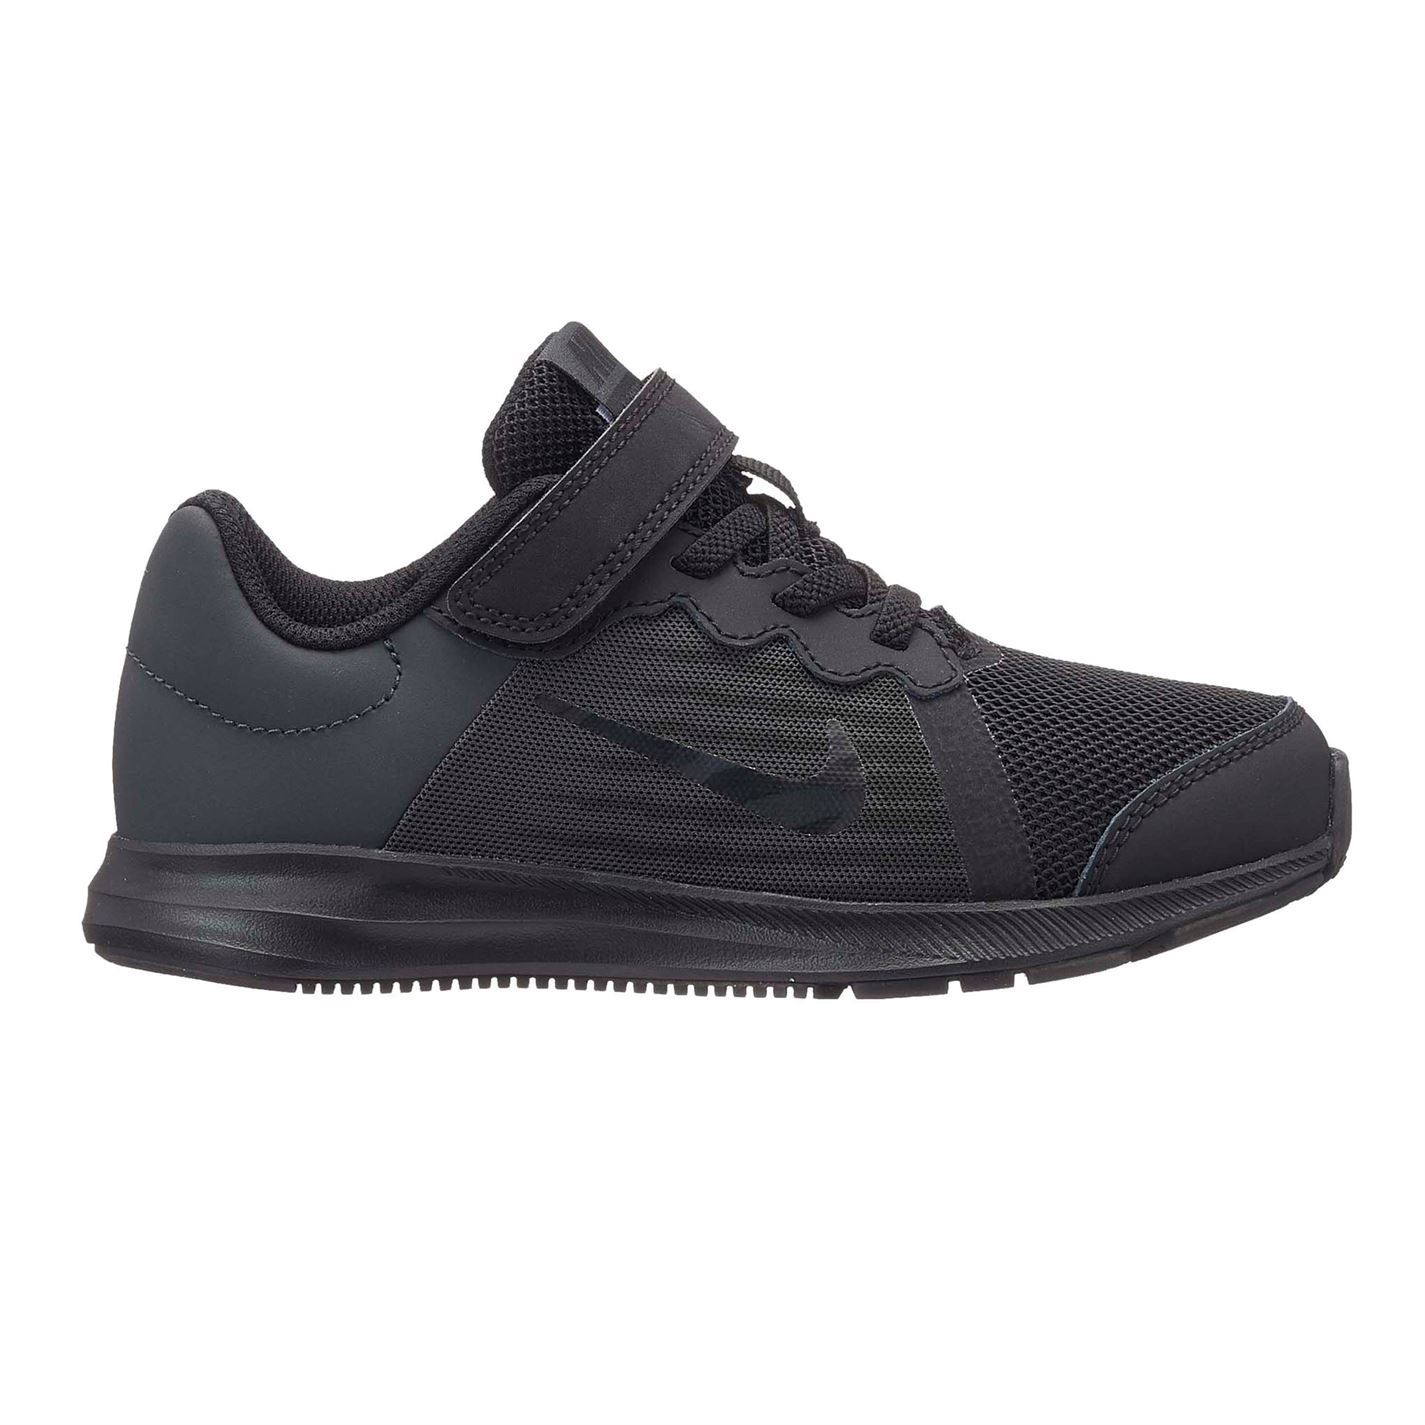 Nike Downshifter 8 Child Boy Trainers Shoes Footwear